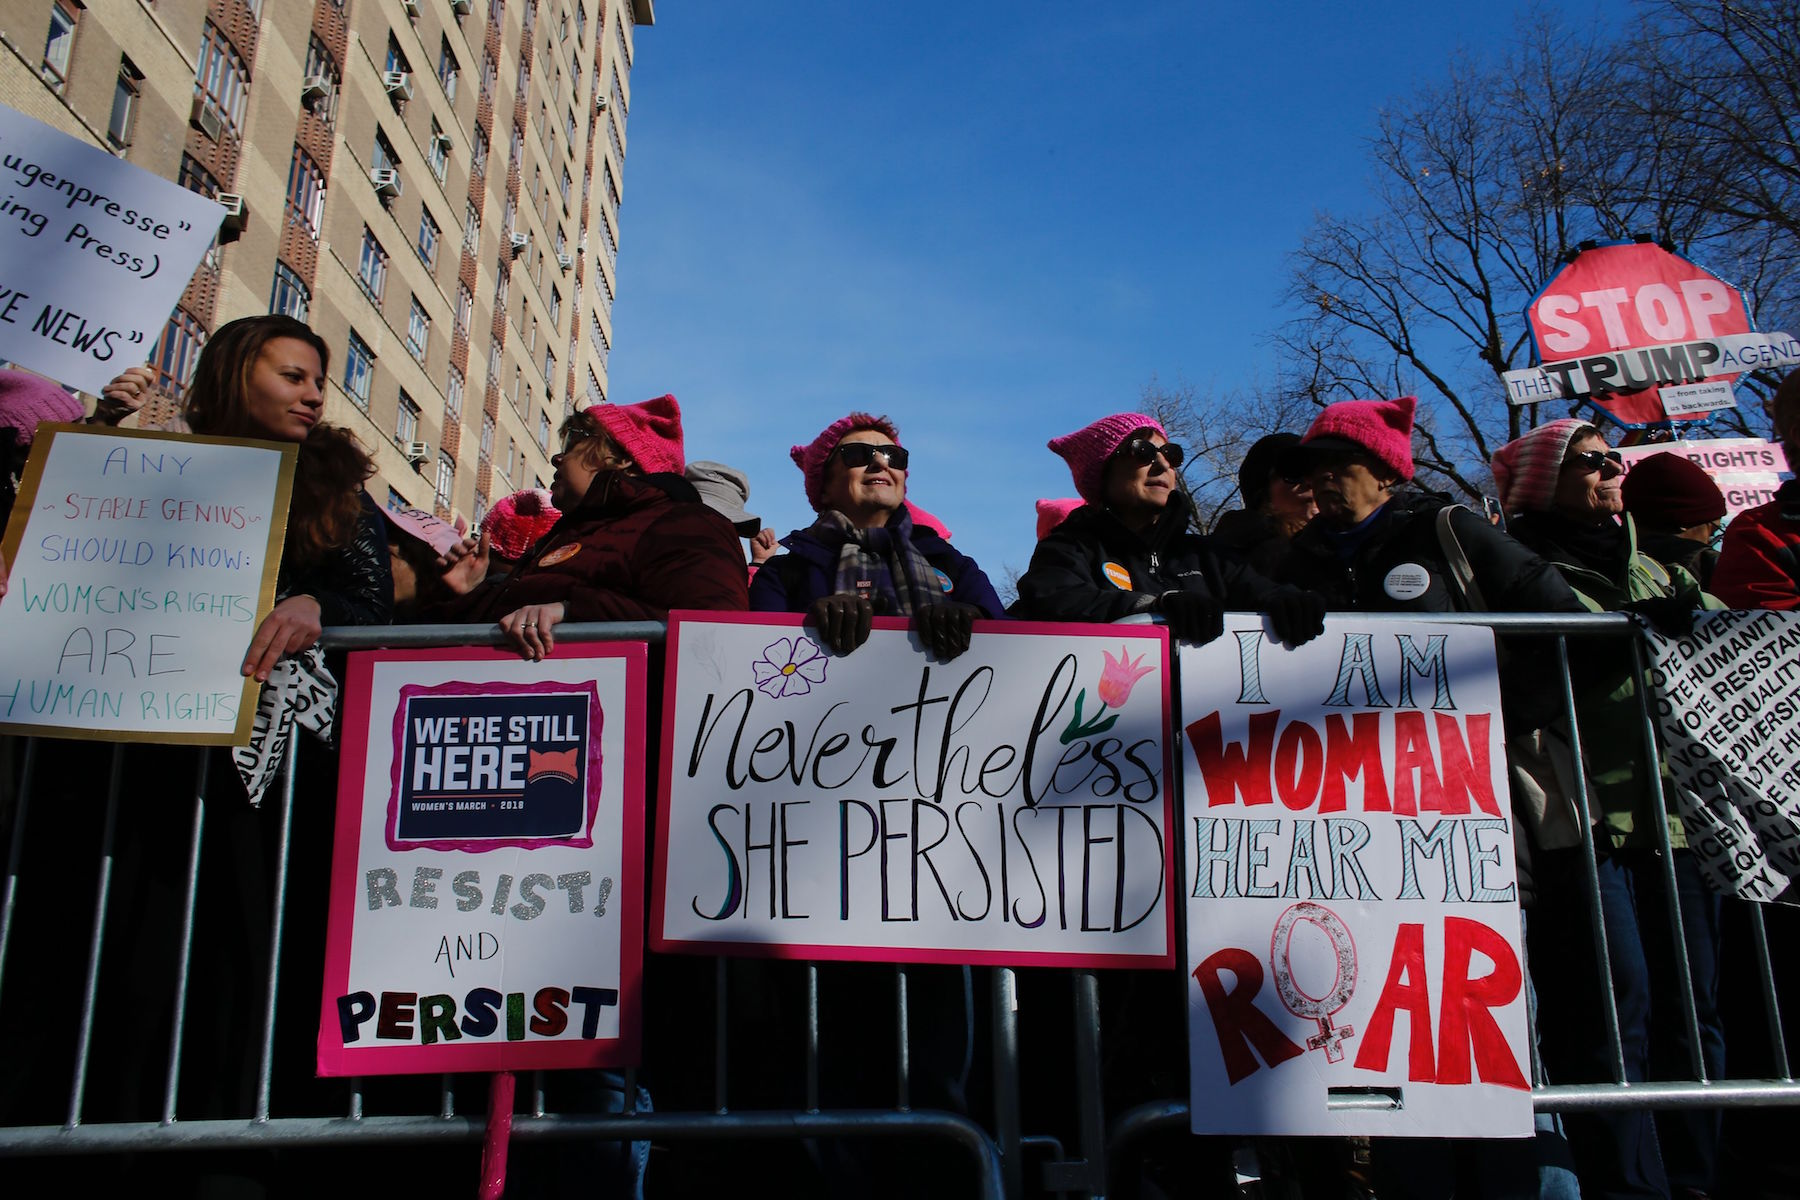 <div class='meta'><div class='origin-logo' data-origin='none'></div><span class='caption-text' data-credit='Kena Betancur/AFP/Getty Images'>People gather before the second annual National Women's March on January 20, 2018 in New York City.</span></div>